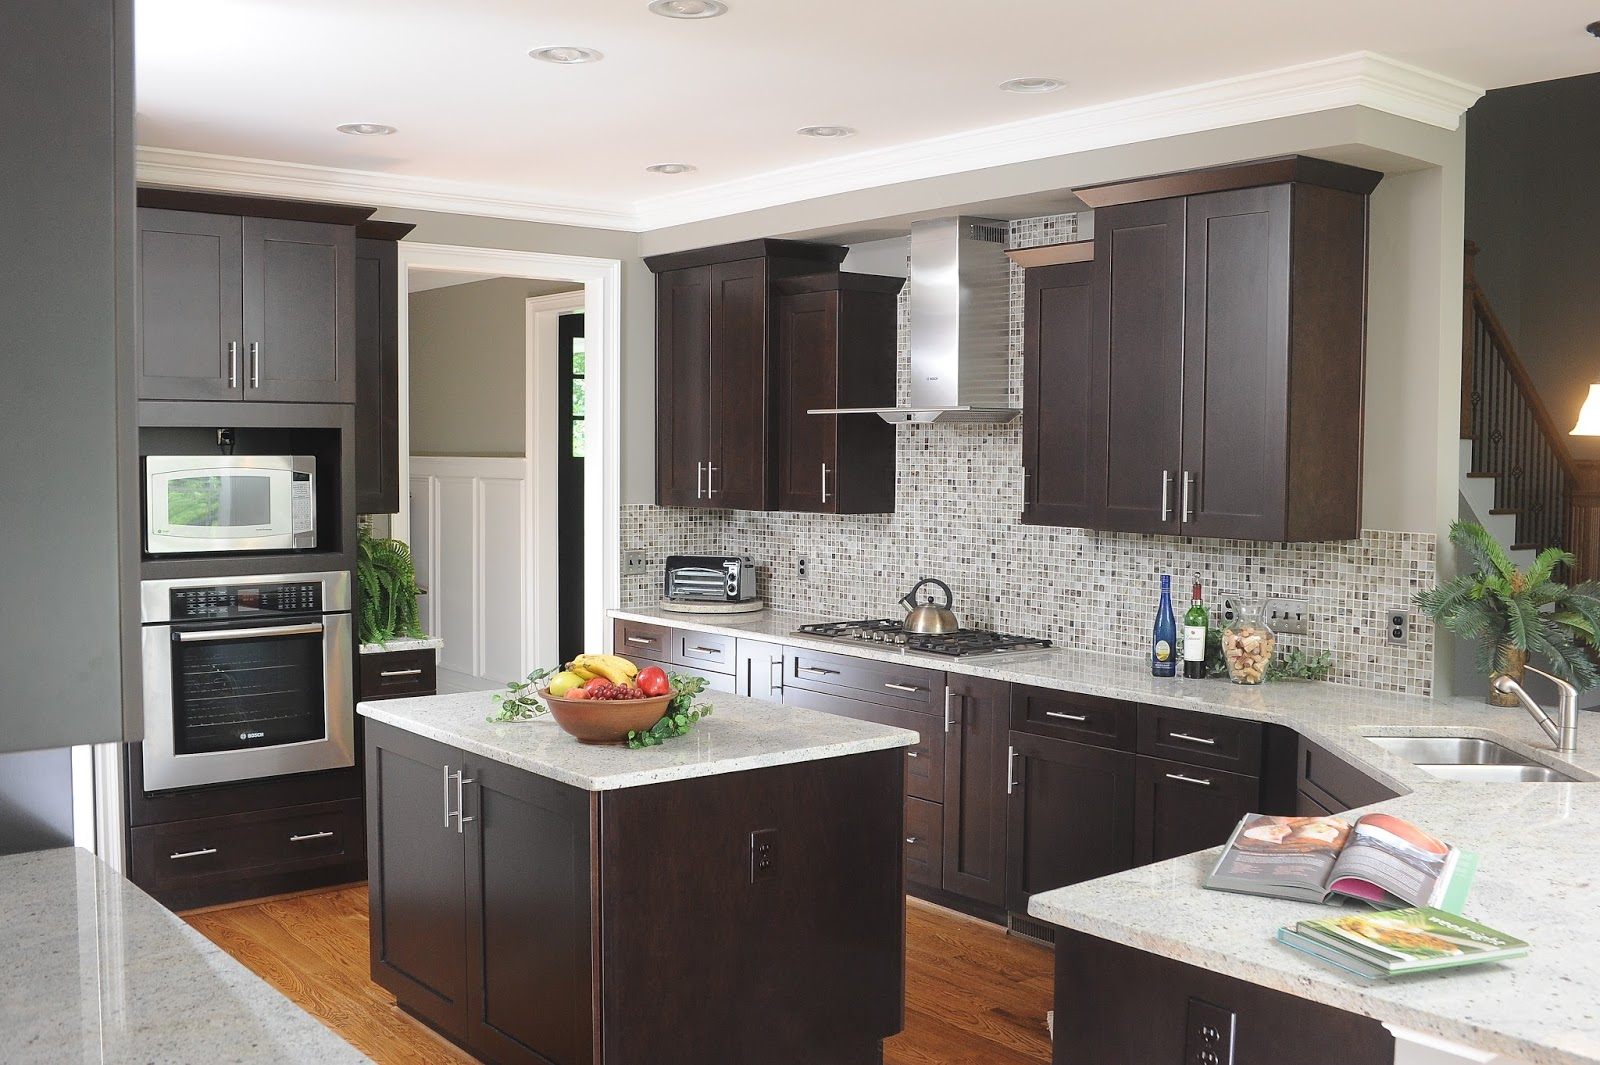 Kitchens, Baths, And Plumbing: Chief Executive Cabinetry